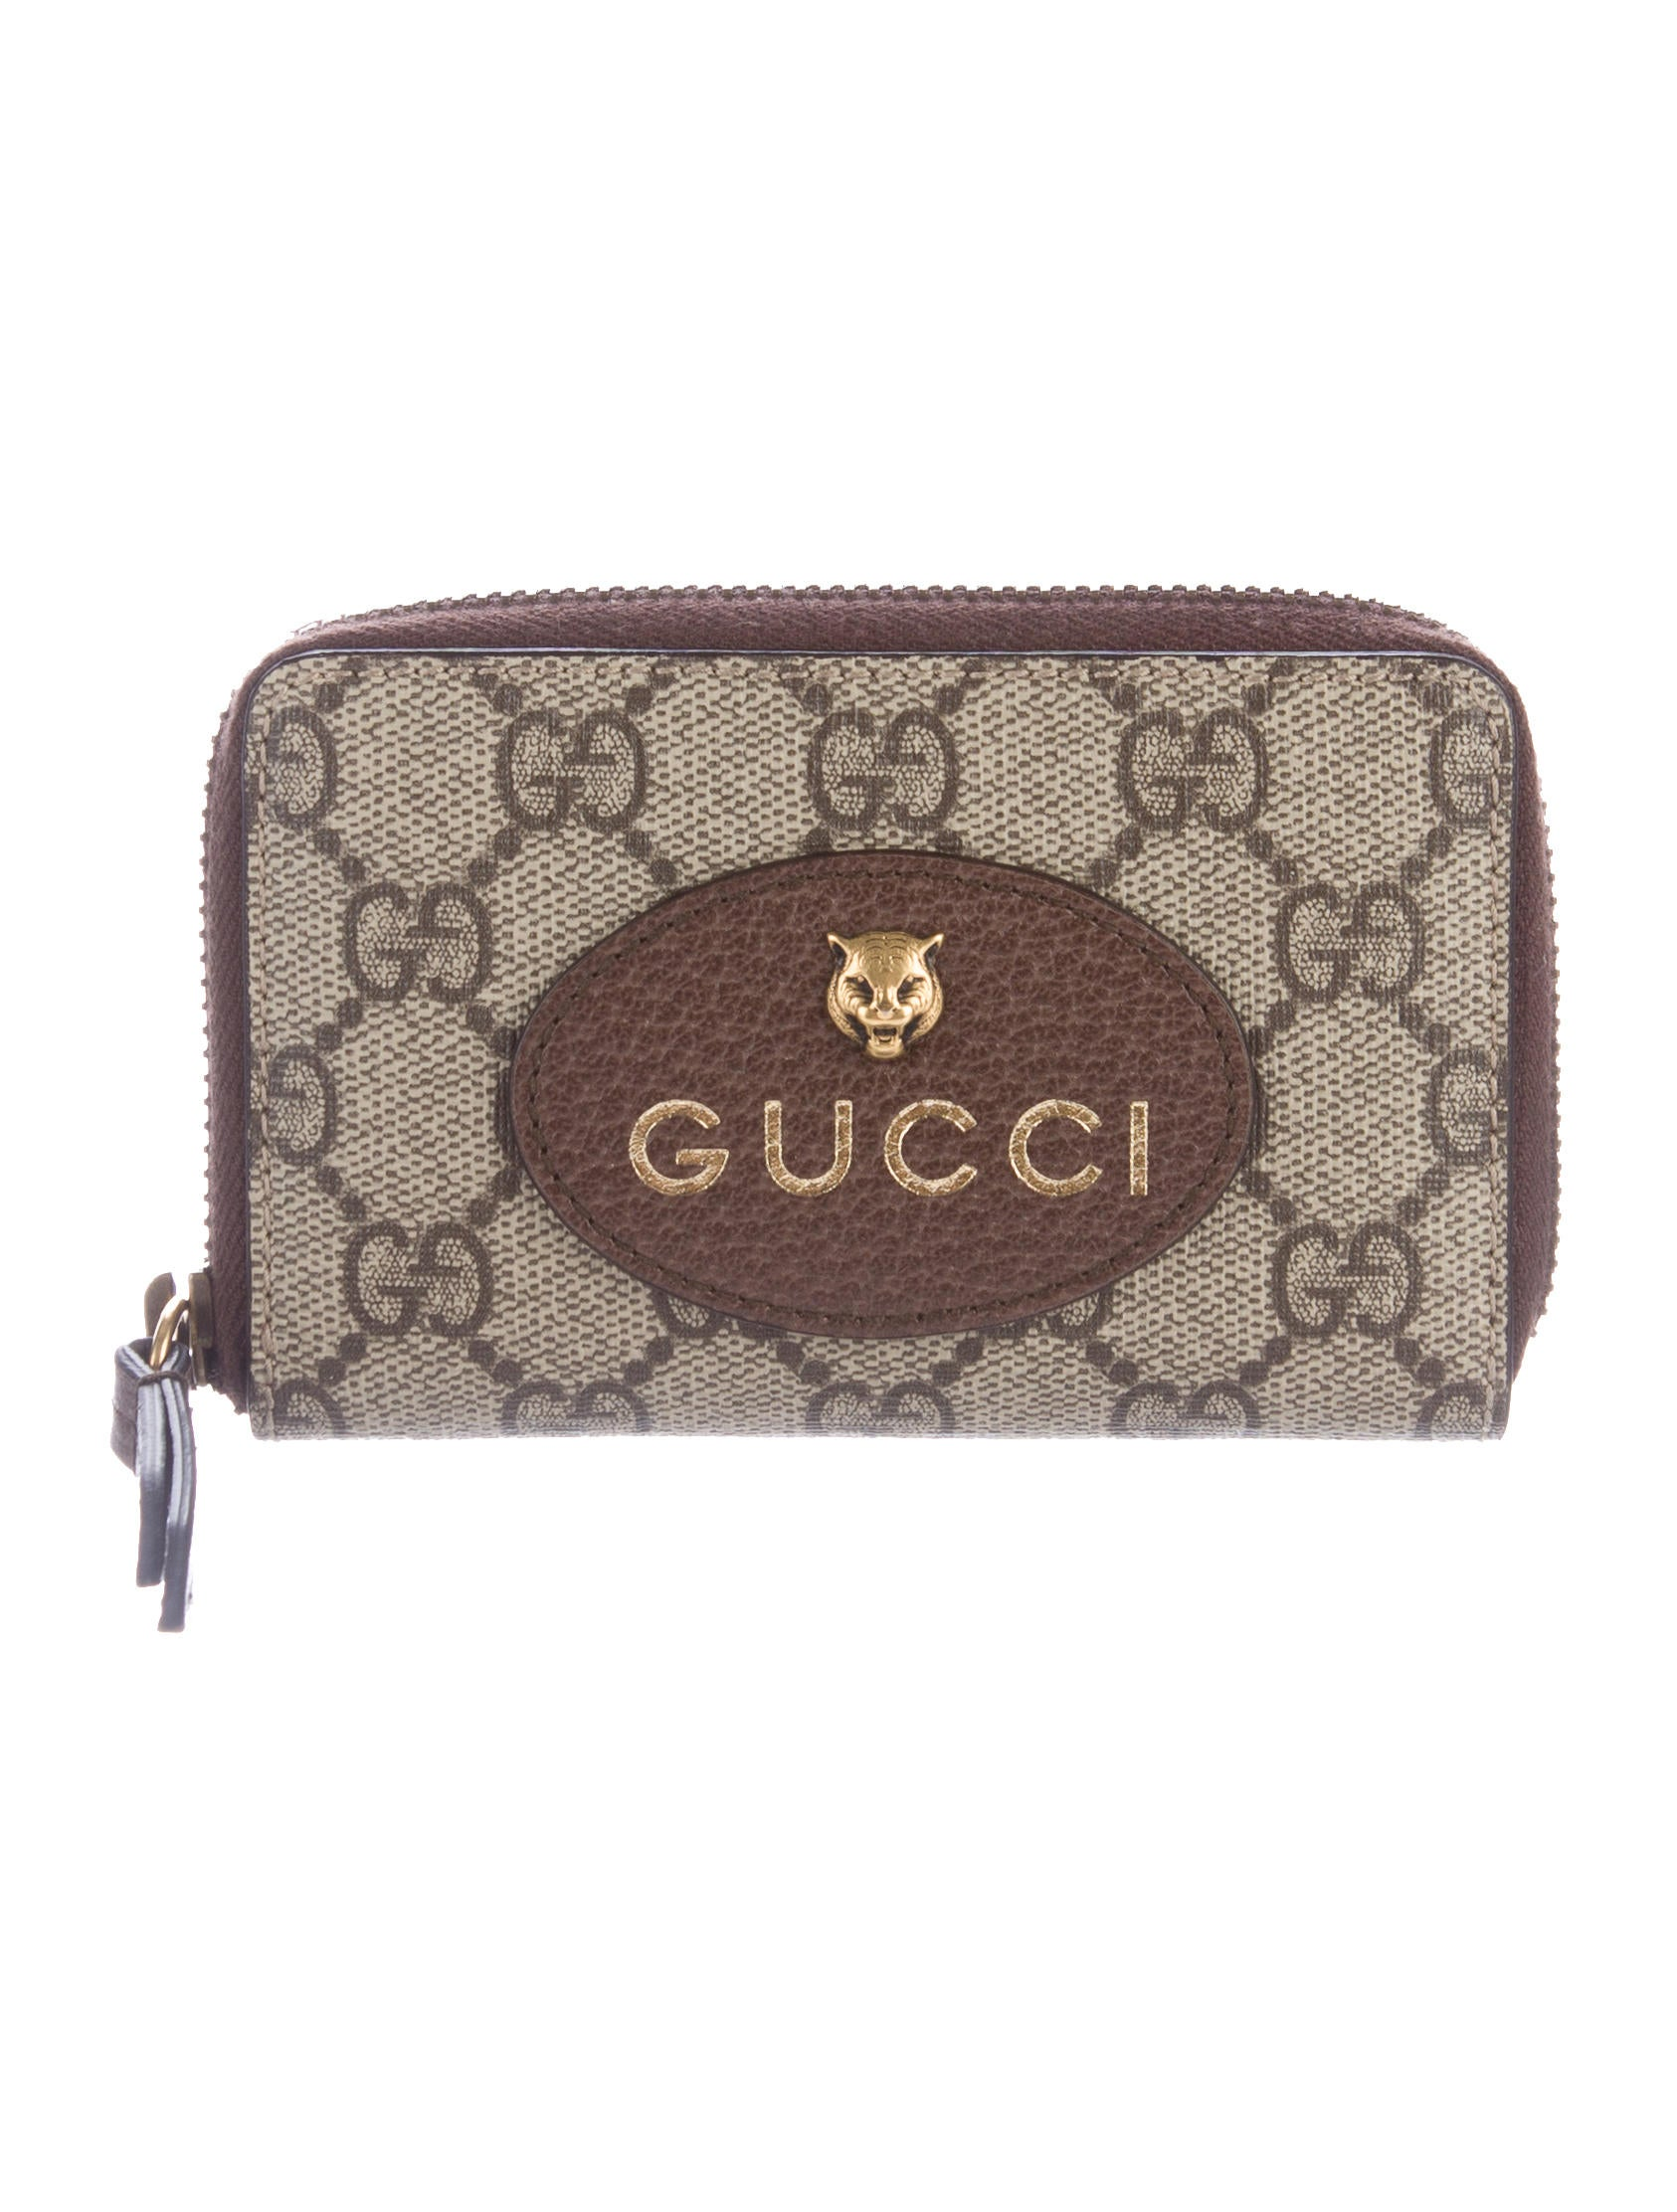 63d48ab534e7 Gucci 2017 Neo Vintage GG Supreme Card Case w/ Tags - Accessories ...